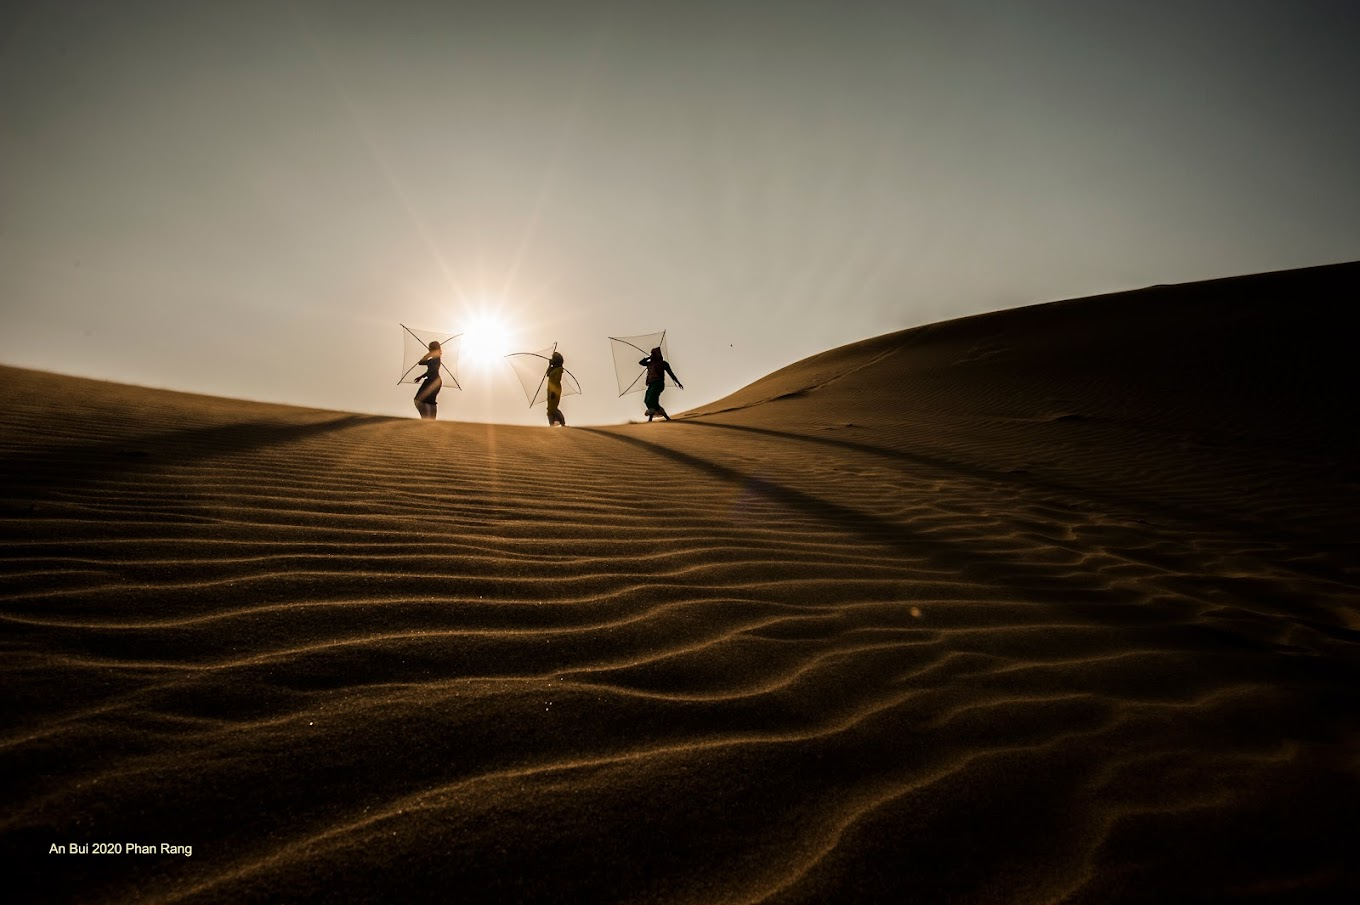 Nam Cuong sand dunes with Cham models